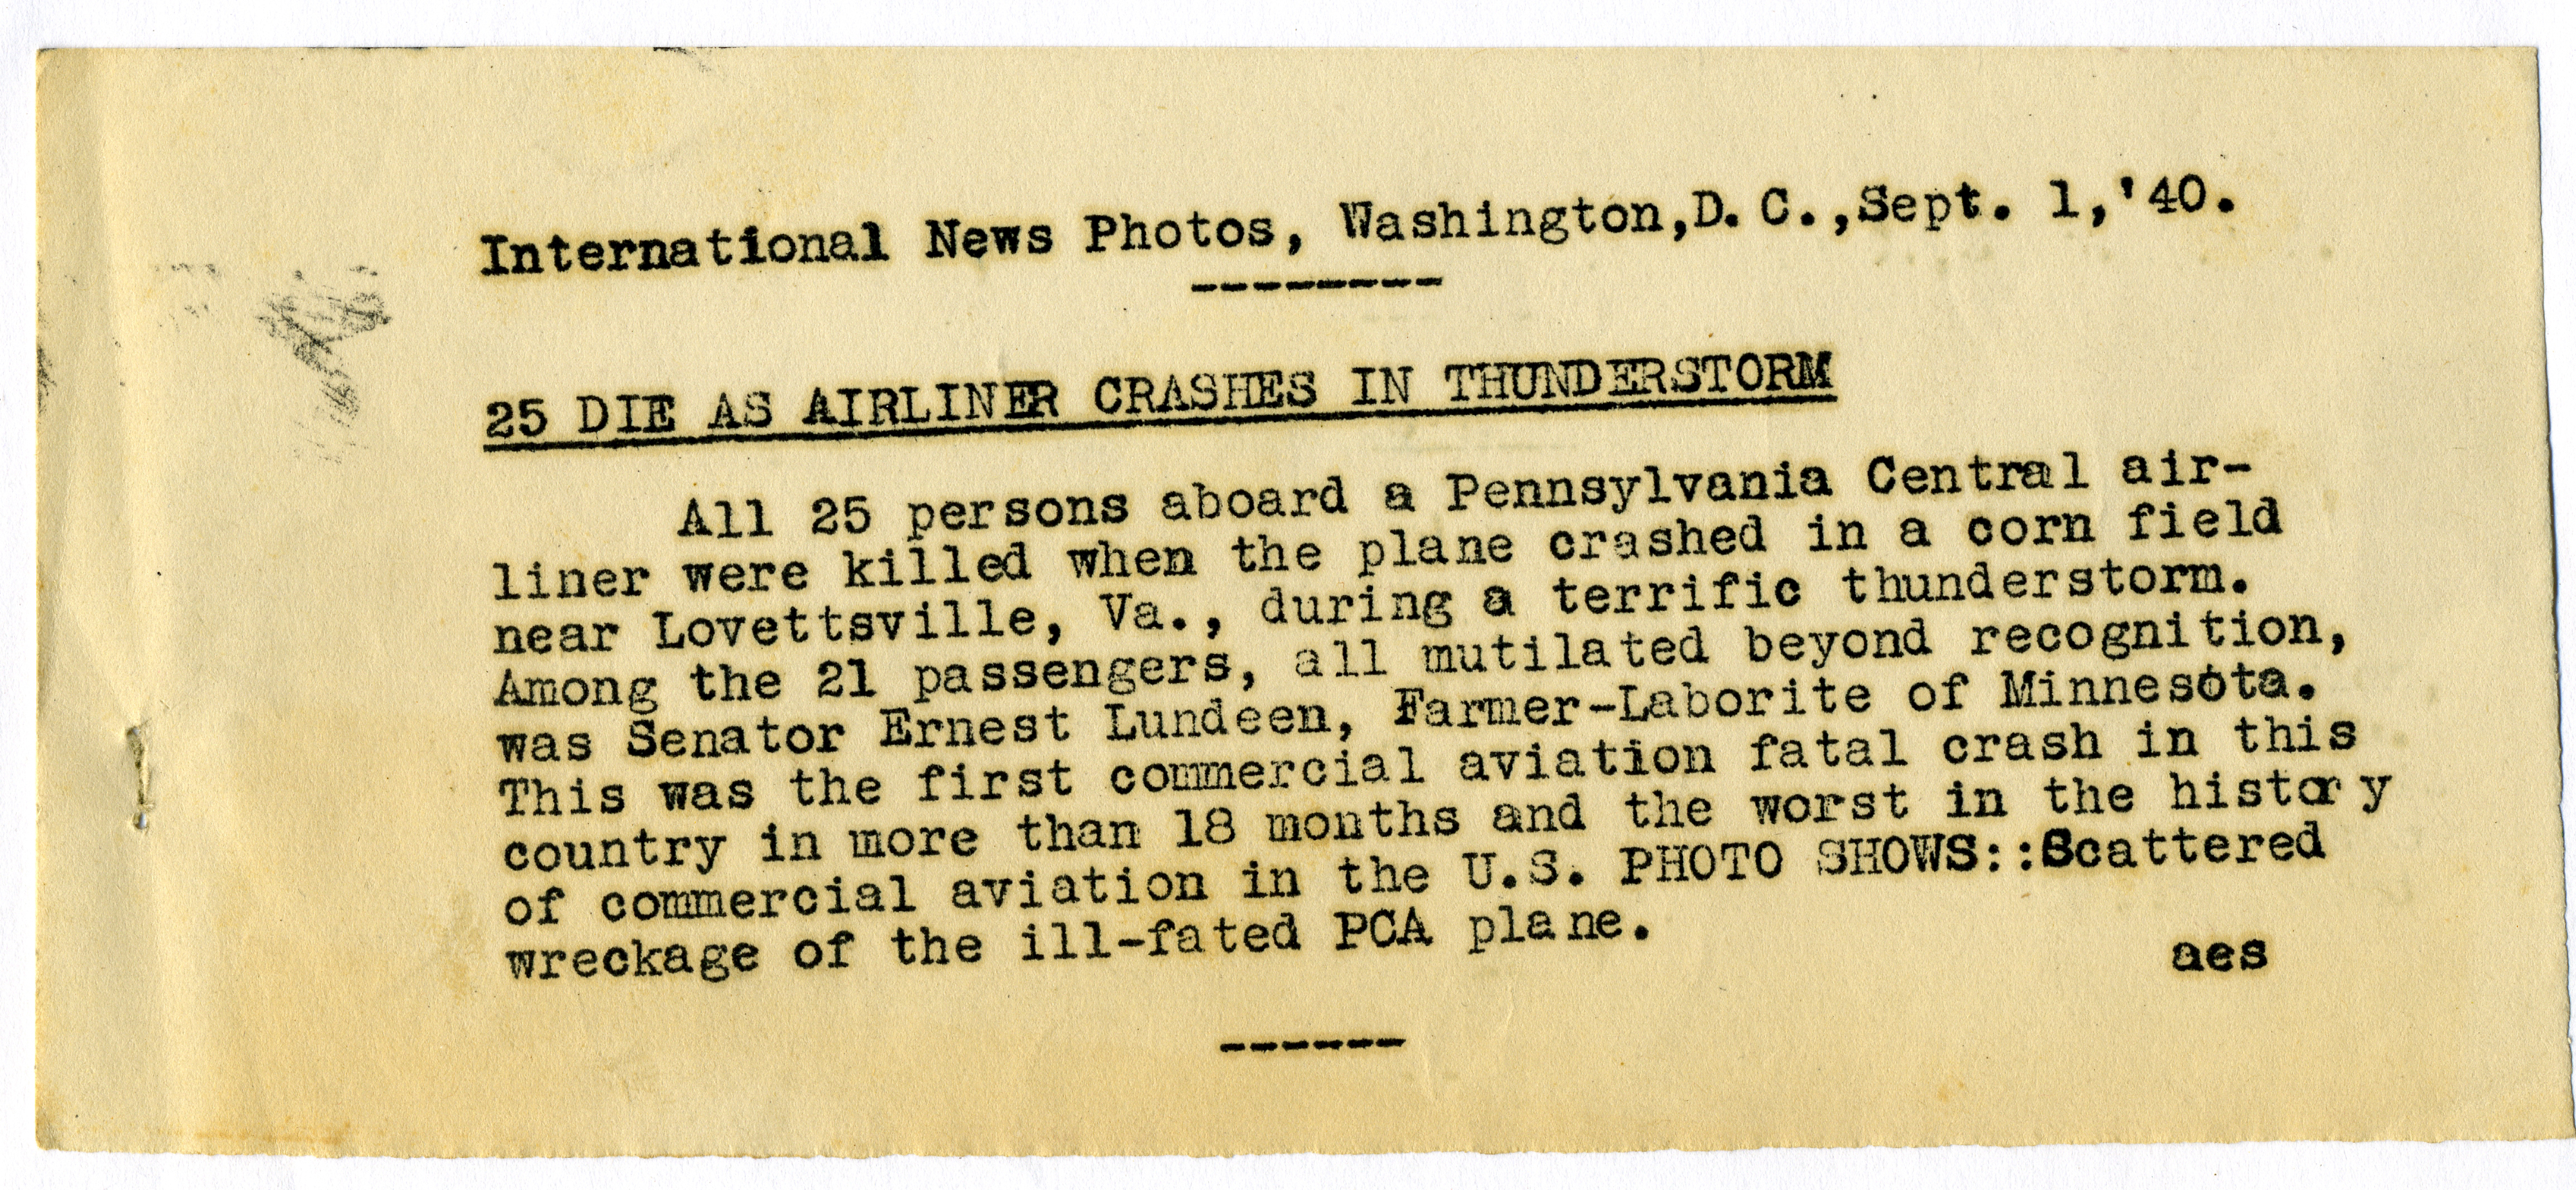 1940-lovettsville-air-disaster-international-news-photos-no-serial-number_reverse